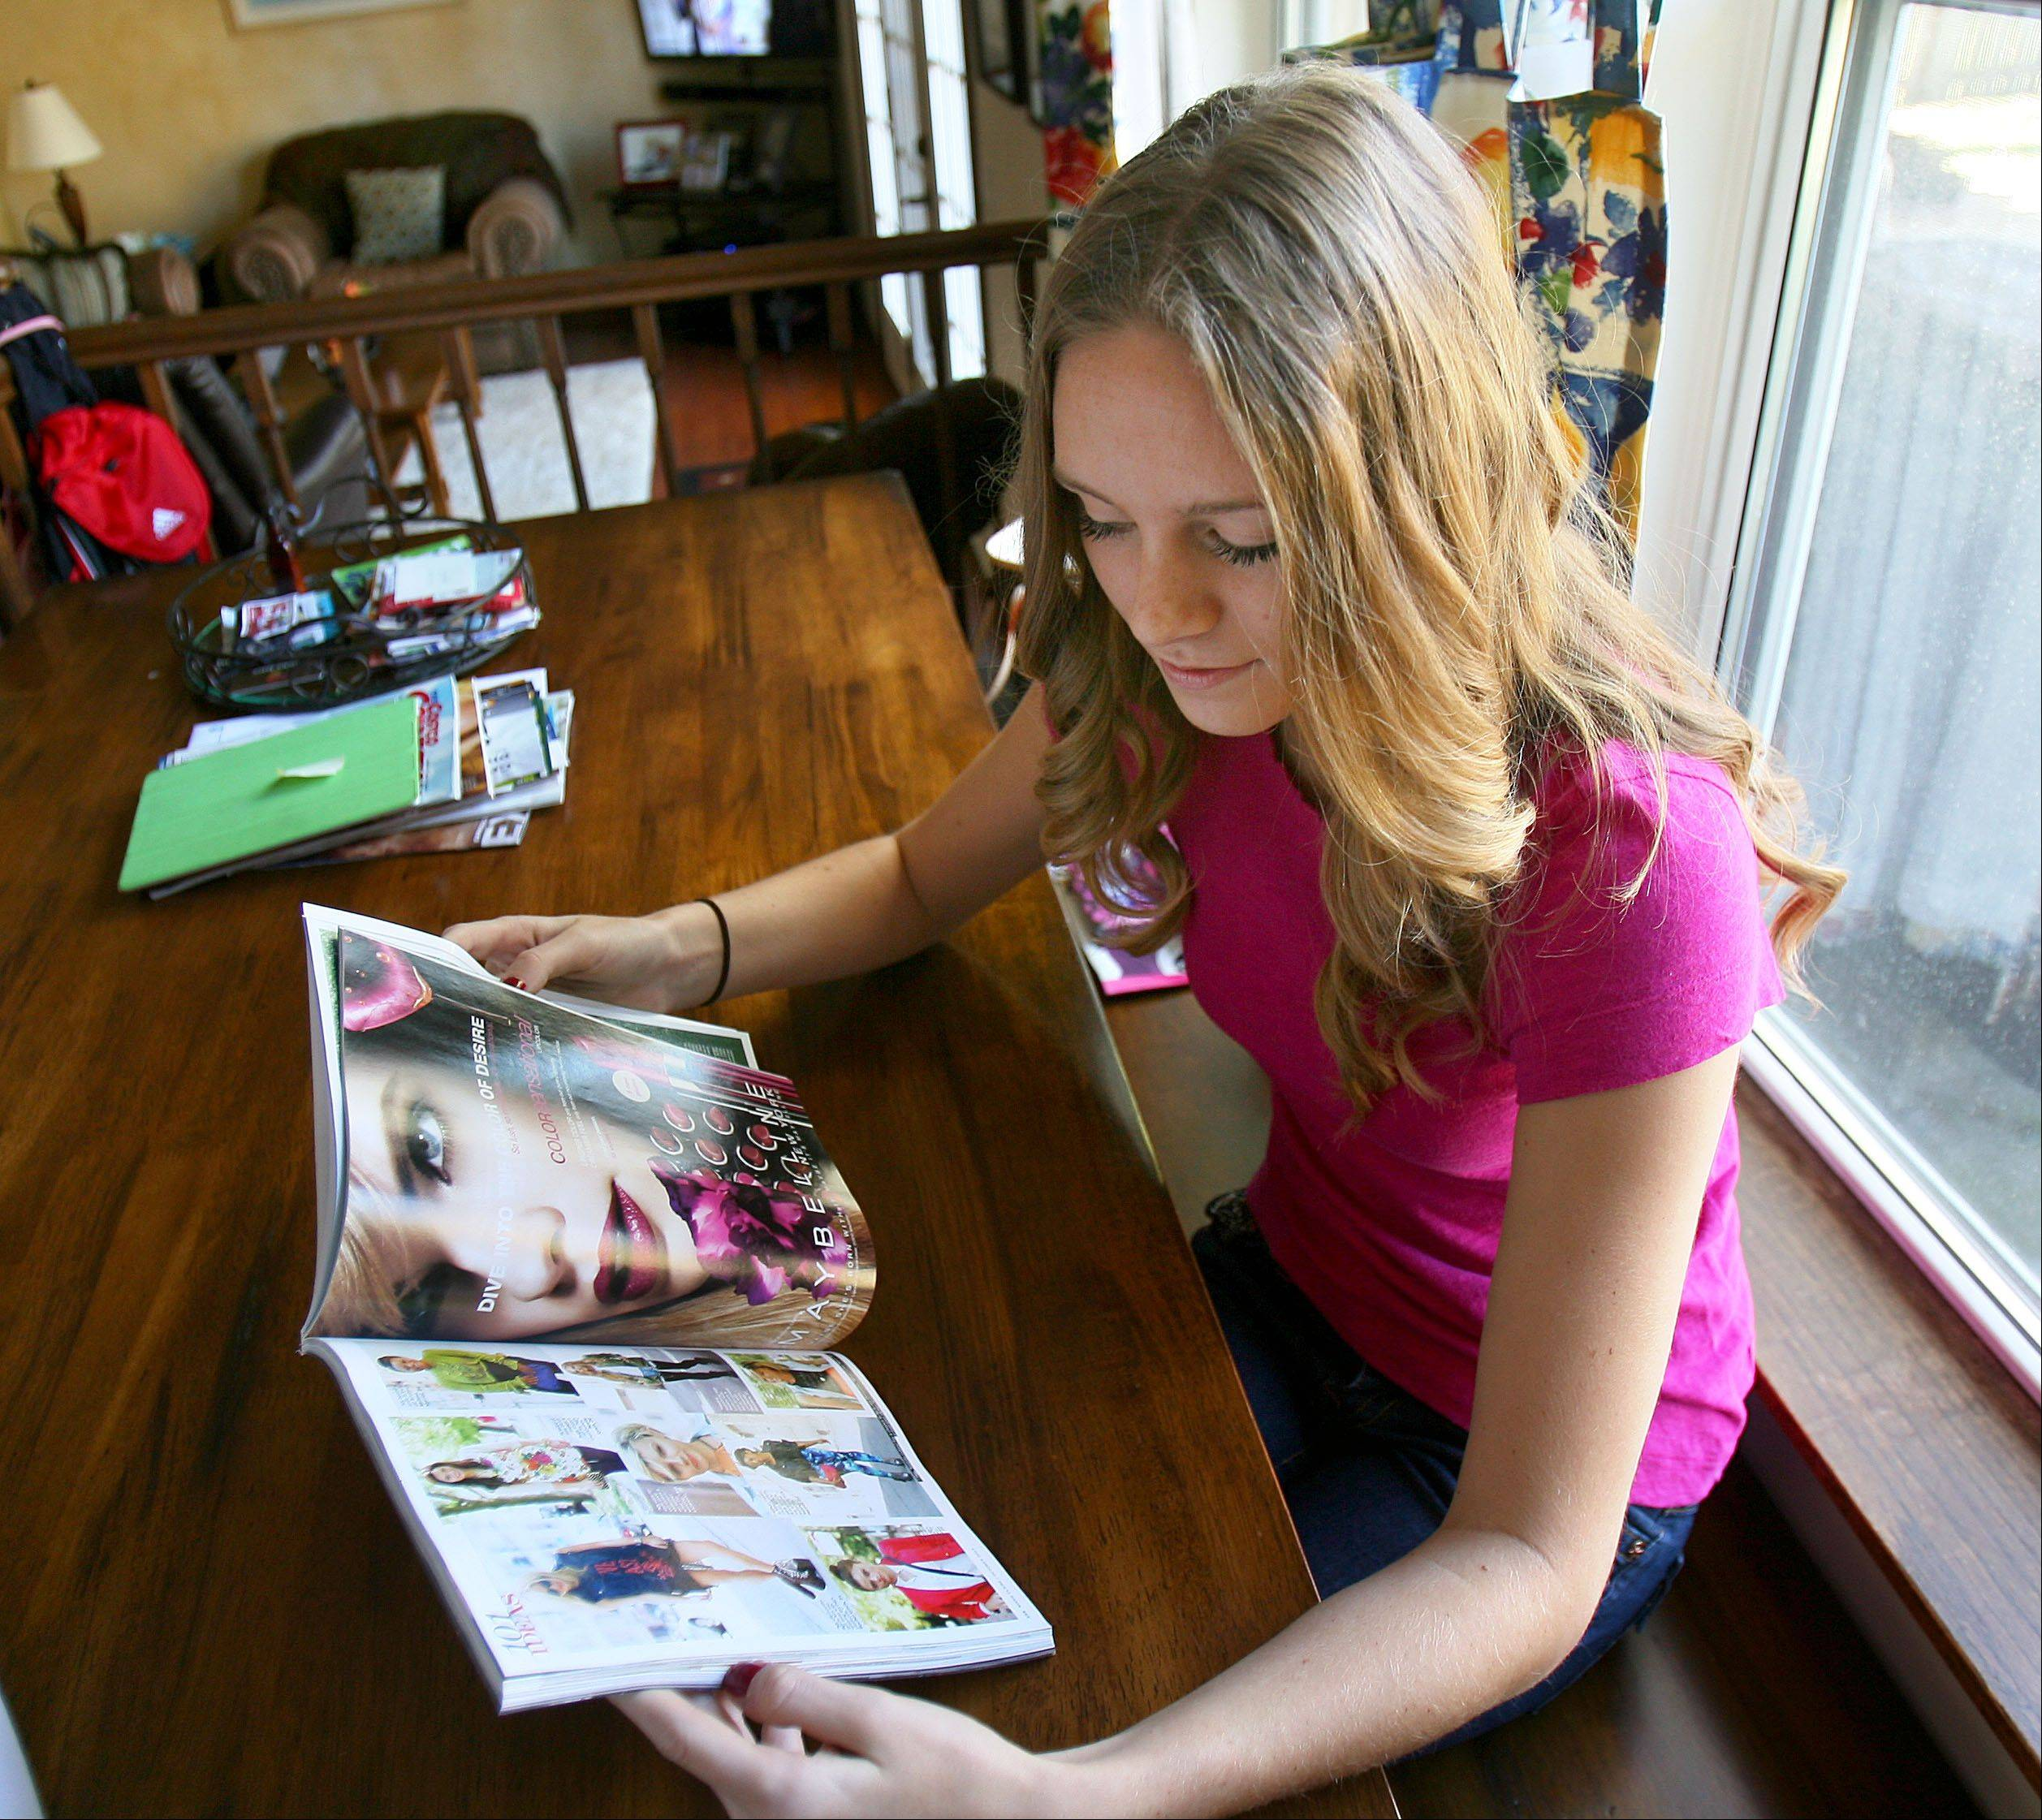 Stevie Finedore, 18, thumbs through an edition of Marie Claire magazine that featured her. The Lake Zurich High School senior is one of the modeling industry's freshest faces and already a runway fixture at New York Fashion Week.